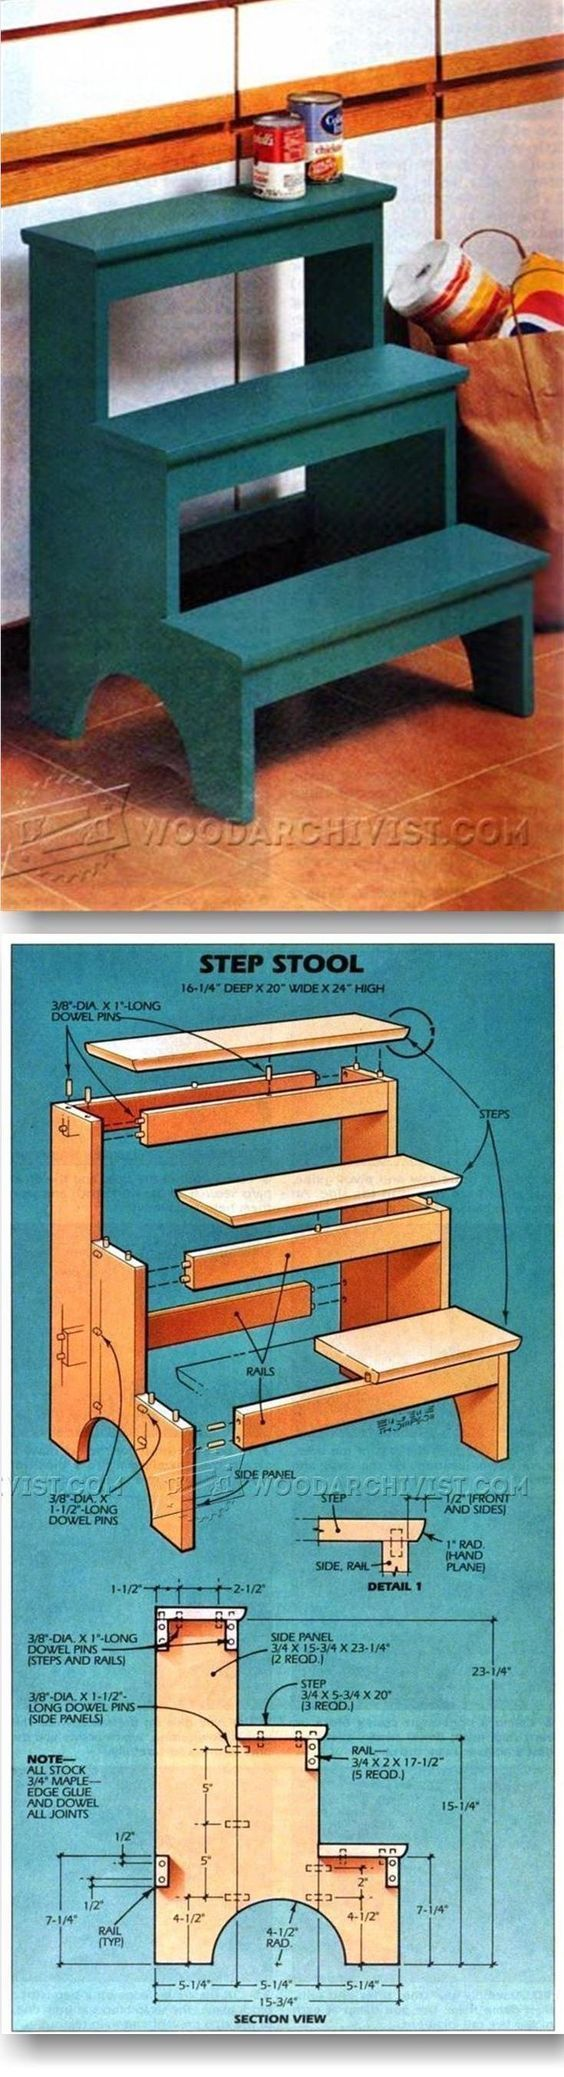 Kitchen Step Stool Plans Furniture Plans And Projects Woodarchivist Com Hout Creaties Hout Diy Houtwerk